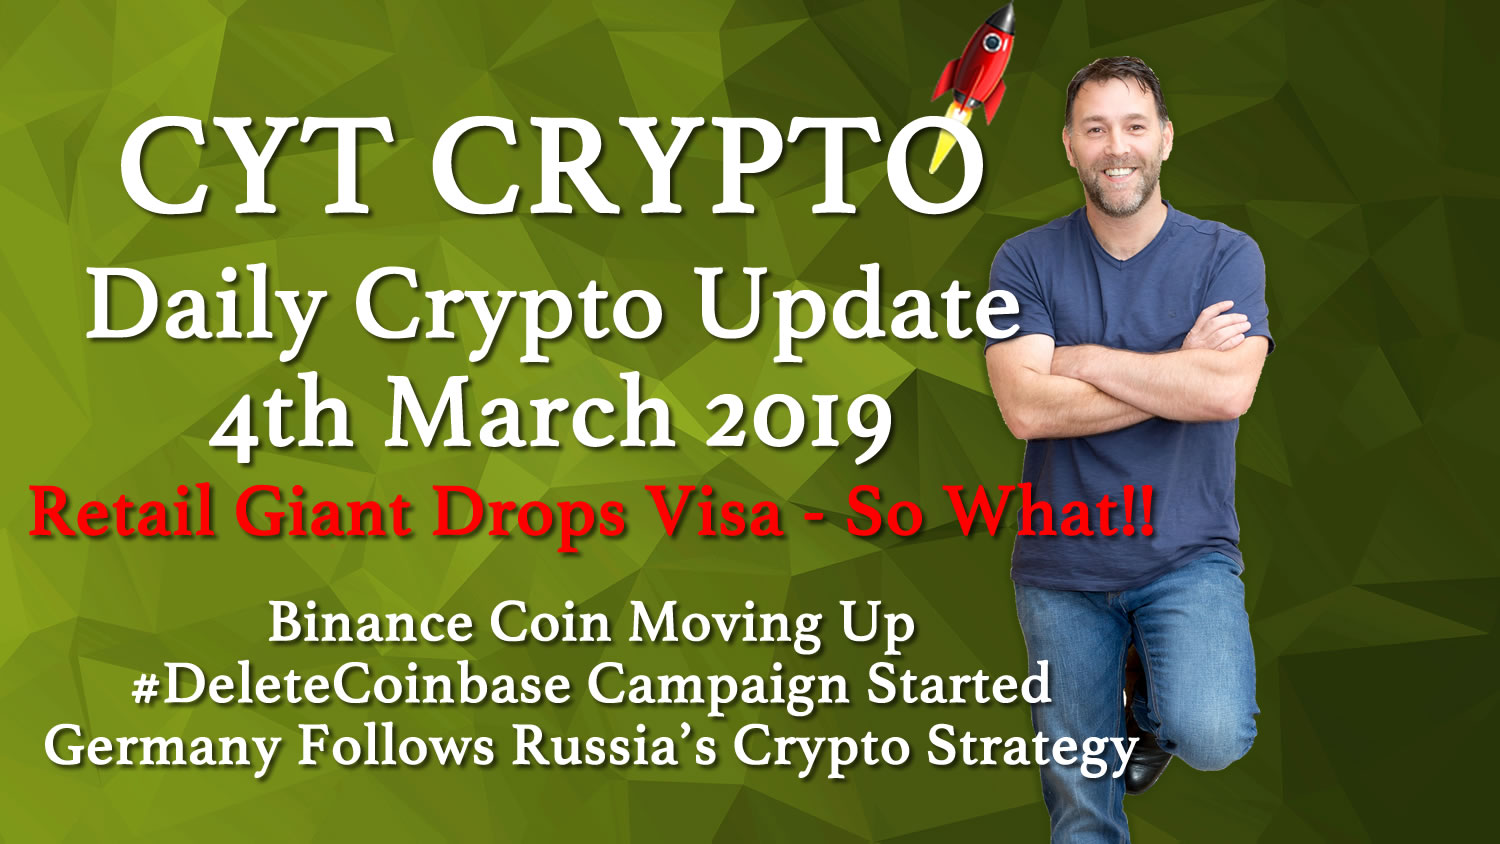 🔥 Retail Giant Ditches Visa🔥BNB Moving Up 🔥 #DeleteCoinbase Campaign 🔥Germany/Russia Crypto Strategy 🔥Free Crypto Anyone?